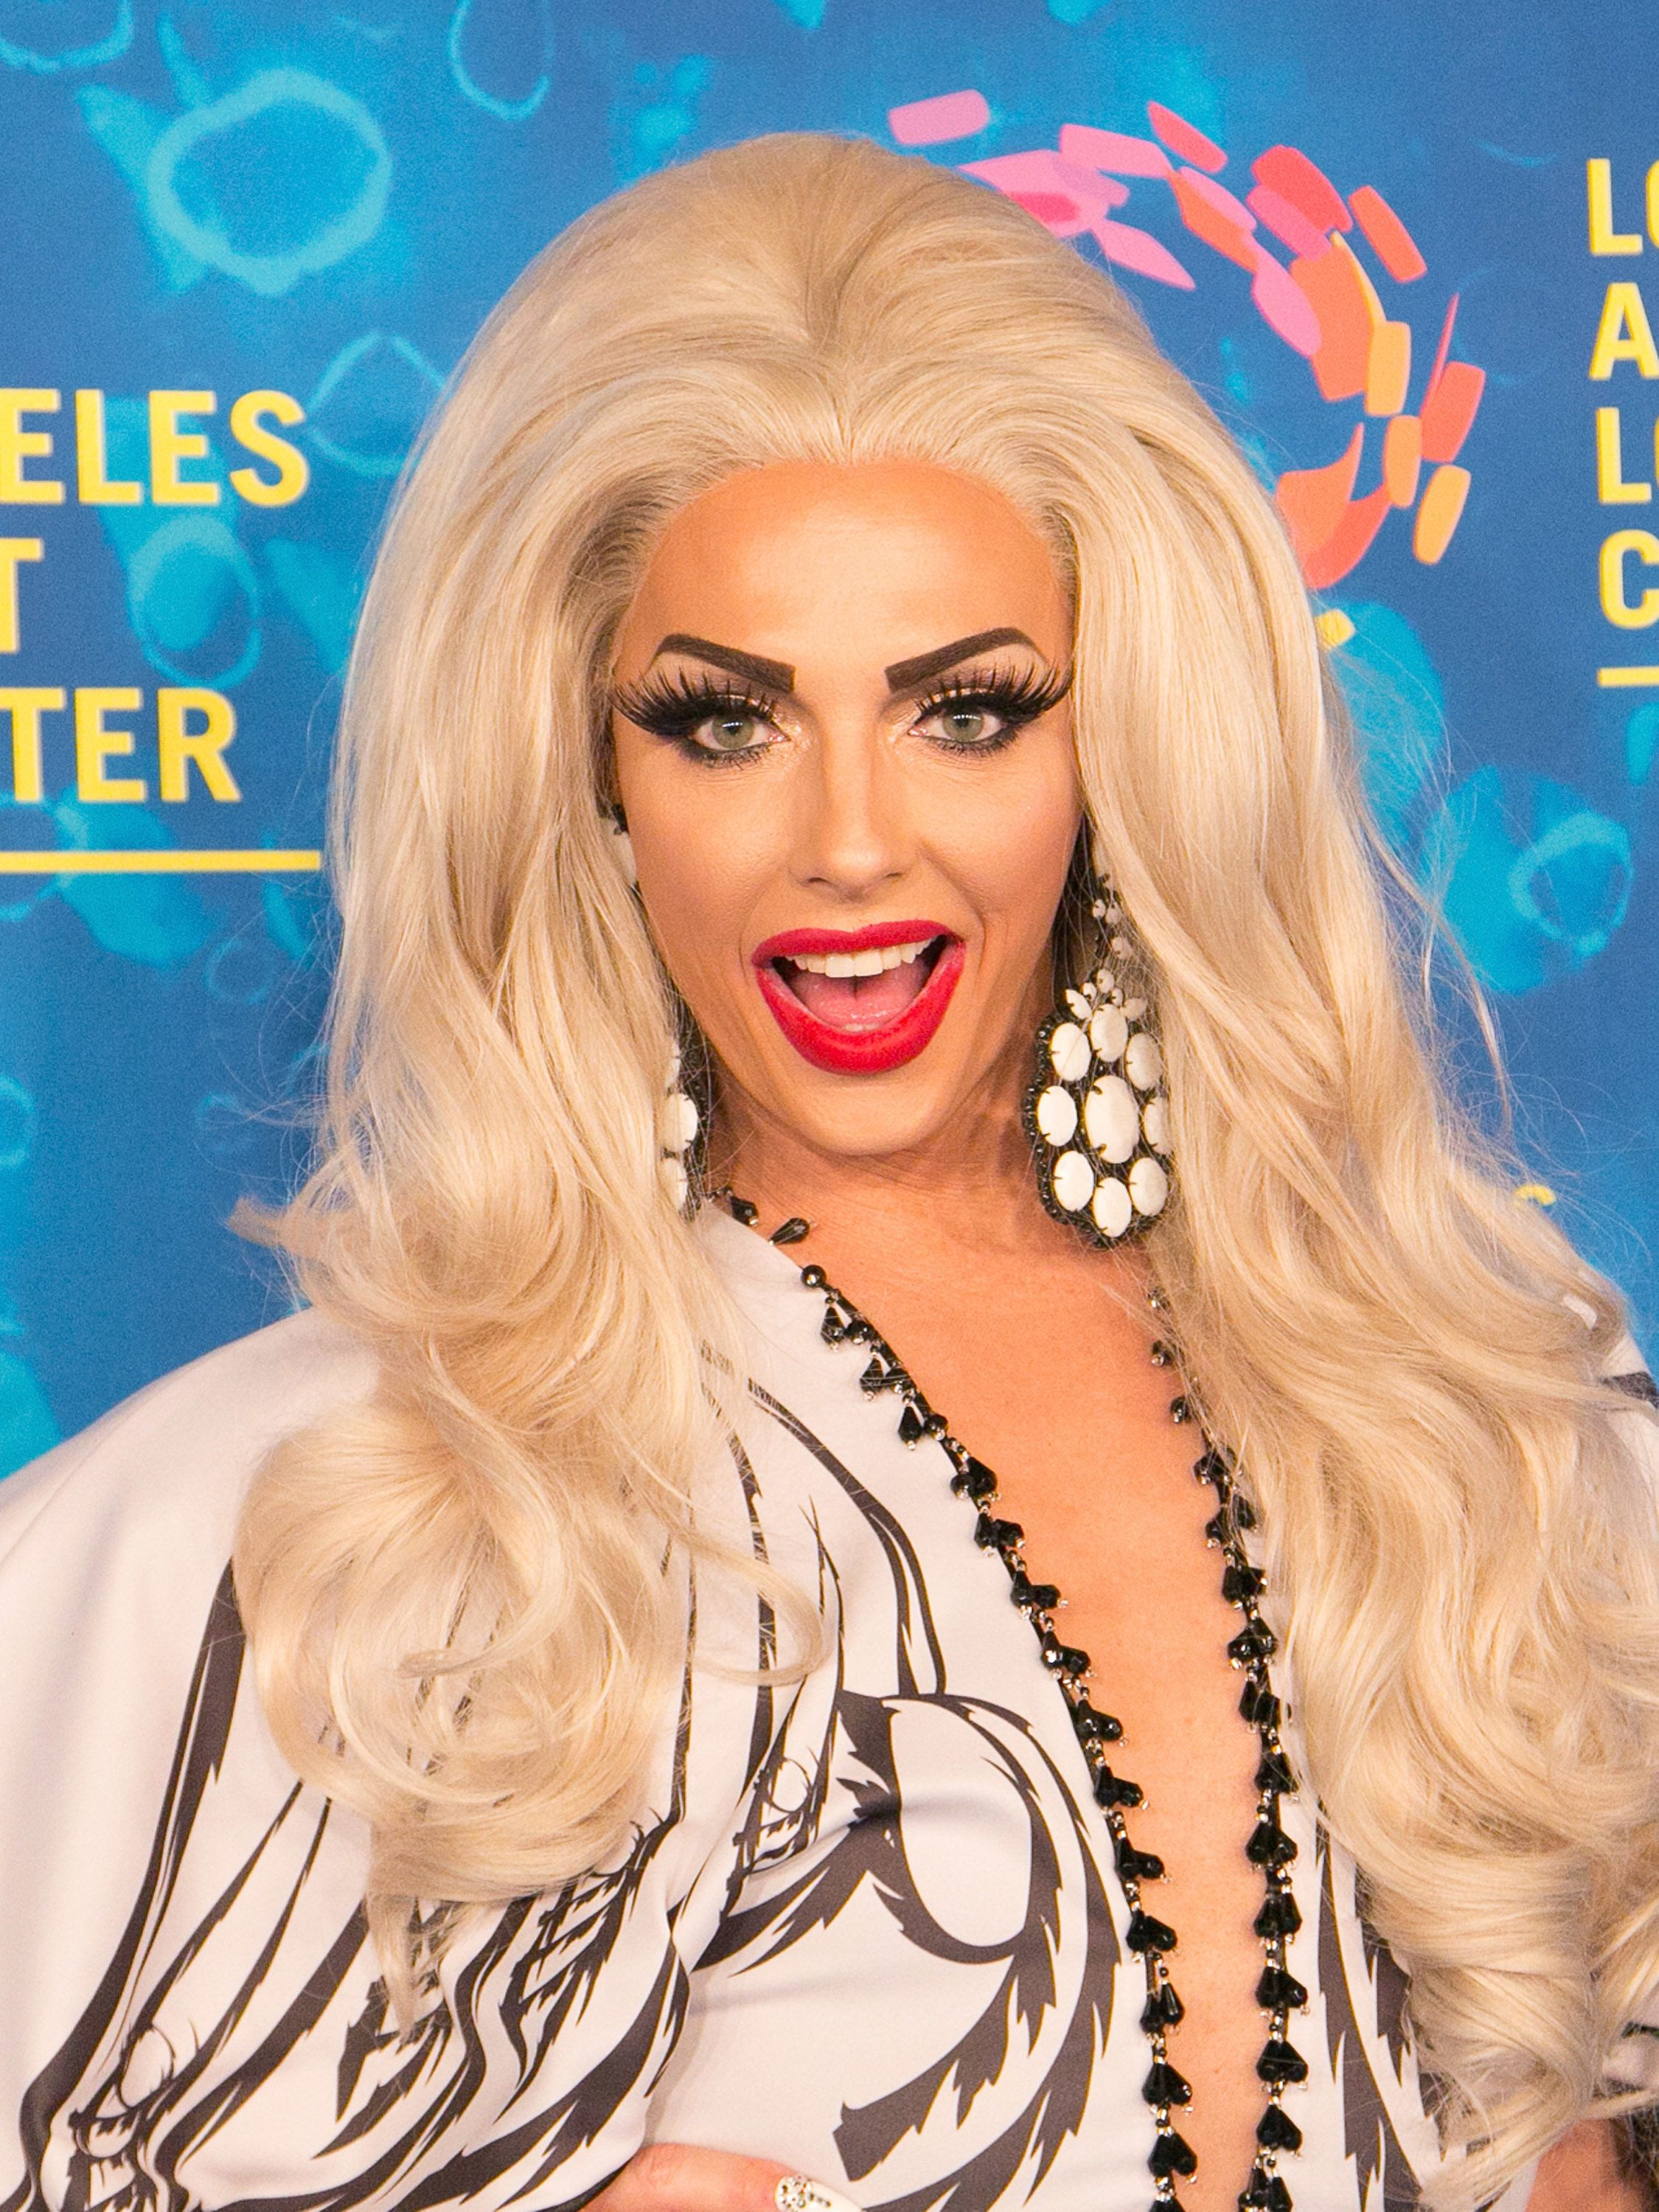 WEST HOLLYWOOD, CA - SEPTEMBER 24:  Alyssa Edwards attends Los Angeles LGBT Center's 47th Anniversary Gala Vanguard Awards at Pacific Design Center on September 24, 2016 in West Hollywood, California.  (Photo by Gabriel Olsen/Getty Images)